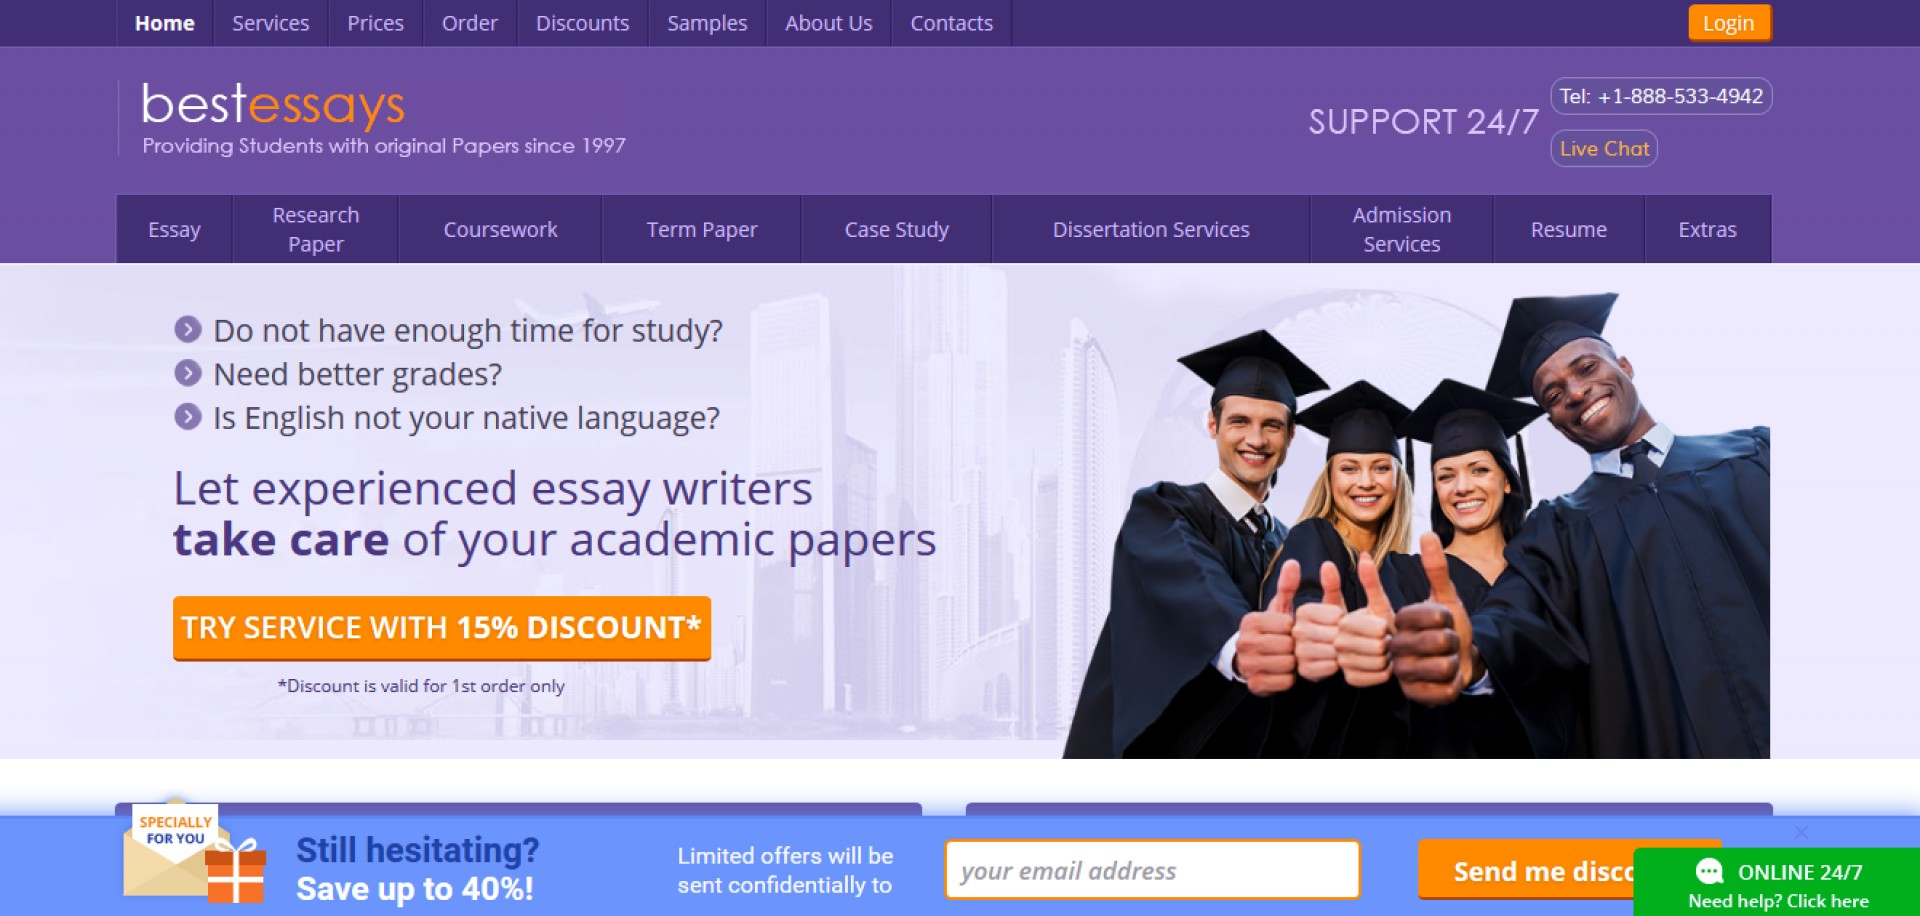 003 Bestessays Best Essay Writing Service Reviews Singular Top Review Reddit Uk 1920